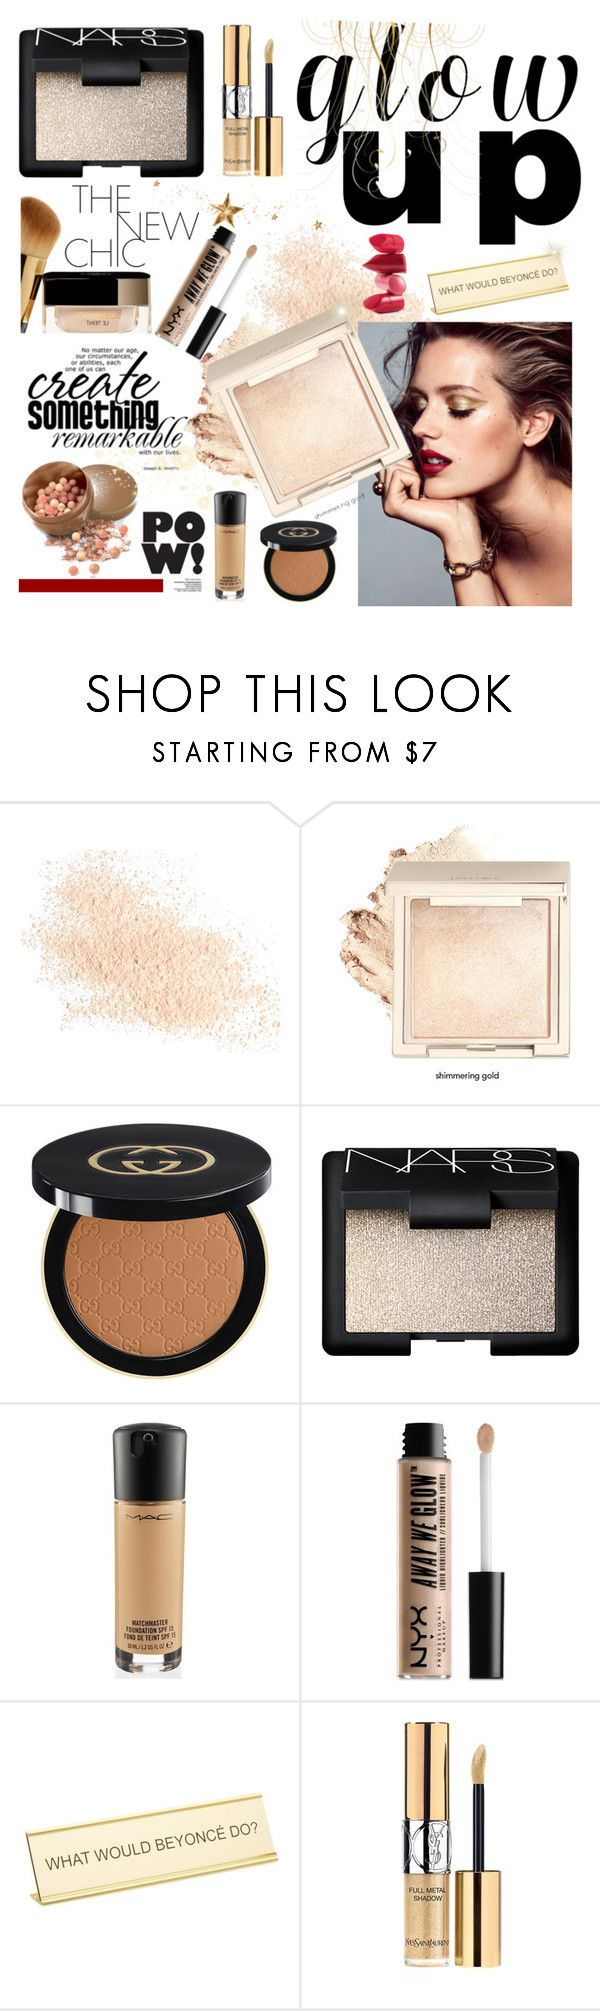 """""""Glowing"""" by yara-mikhael-deeb ❤ liked on Polyvore featuring beauty, Eve Lom, Gucci, NARS Cosmetics, MAC Cosmetics, Avon, NYX, Rossetto, He Said, She Said and Yves Saint Laurent"""